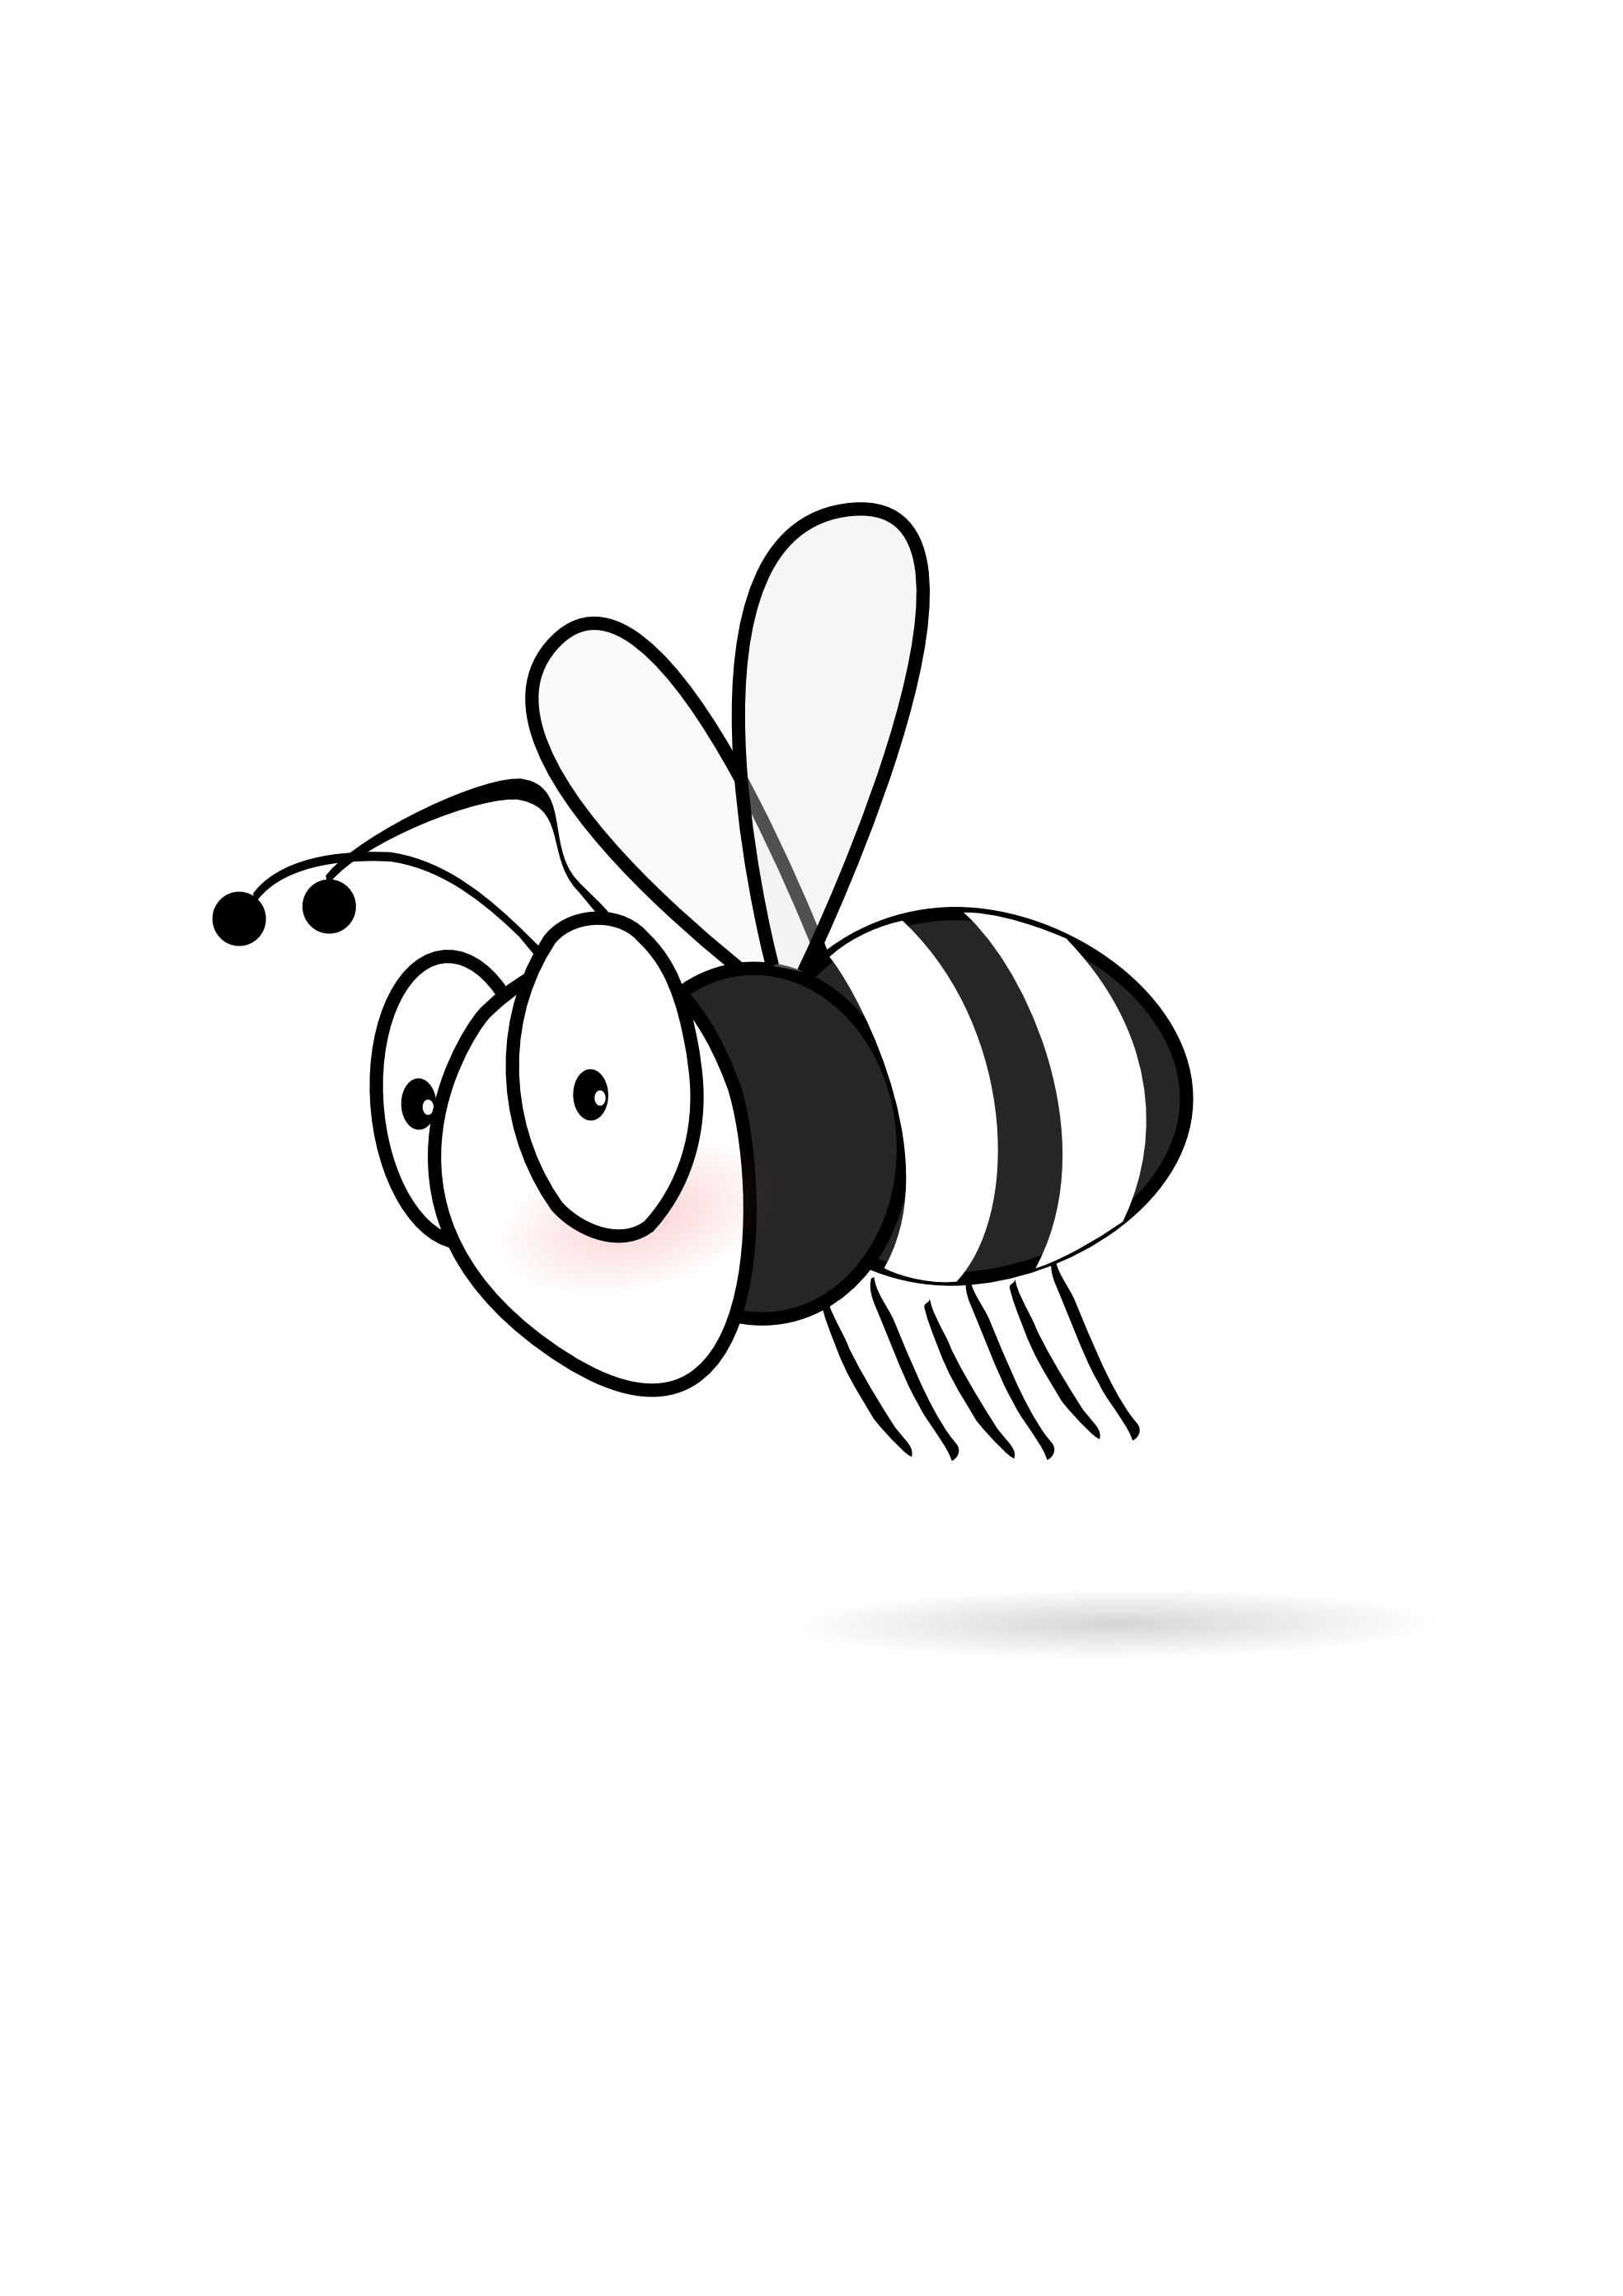 Cute Bee Clipart Black And White Clipart Panda